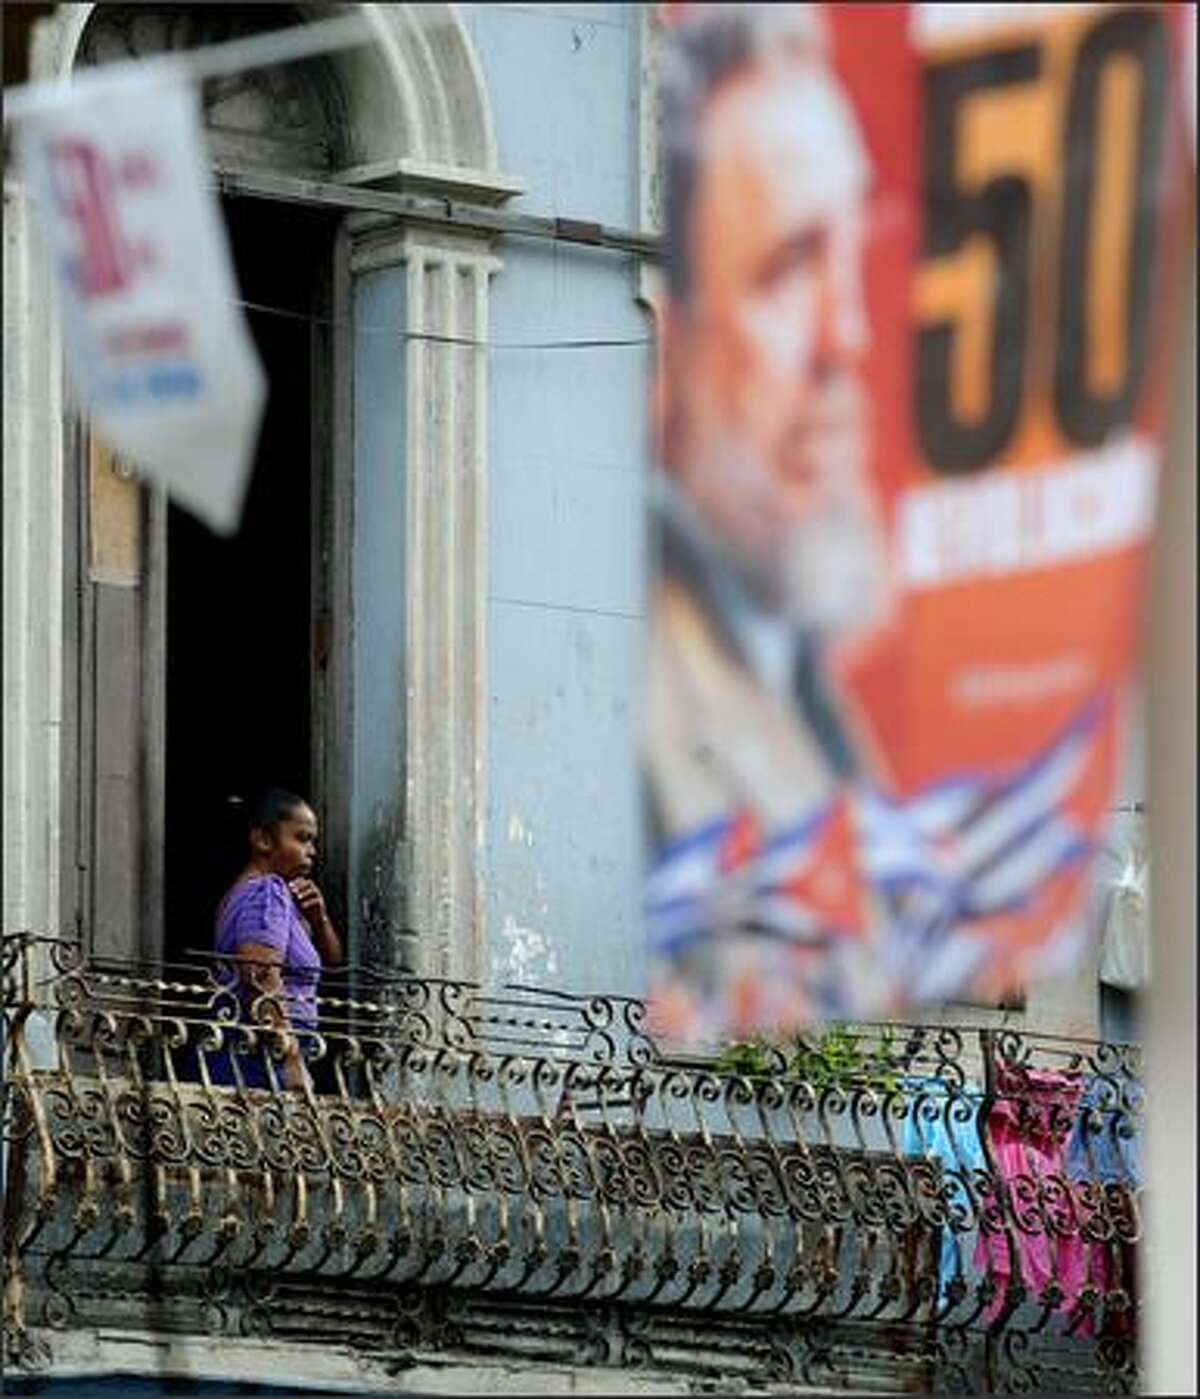 A women stays on a balcony in downtown Havana on Sunday. Next January 1st, 2009 marks the 50th anniversary of the Cuban Revolution, the date in which dictator Fulgencio Batista was forced to flee from Cuba by plane.